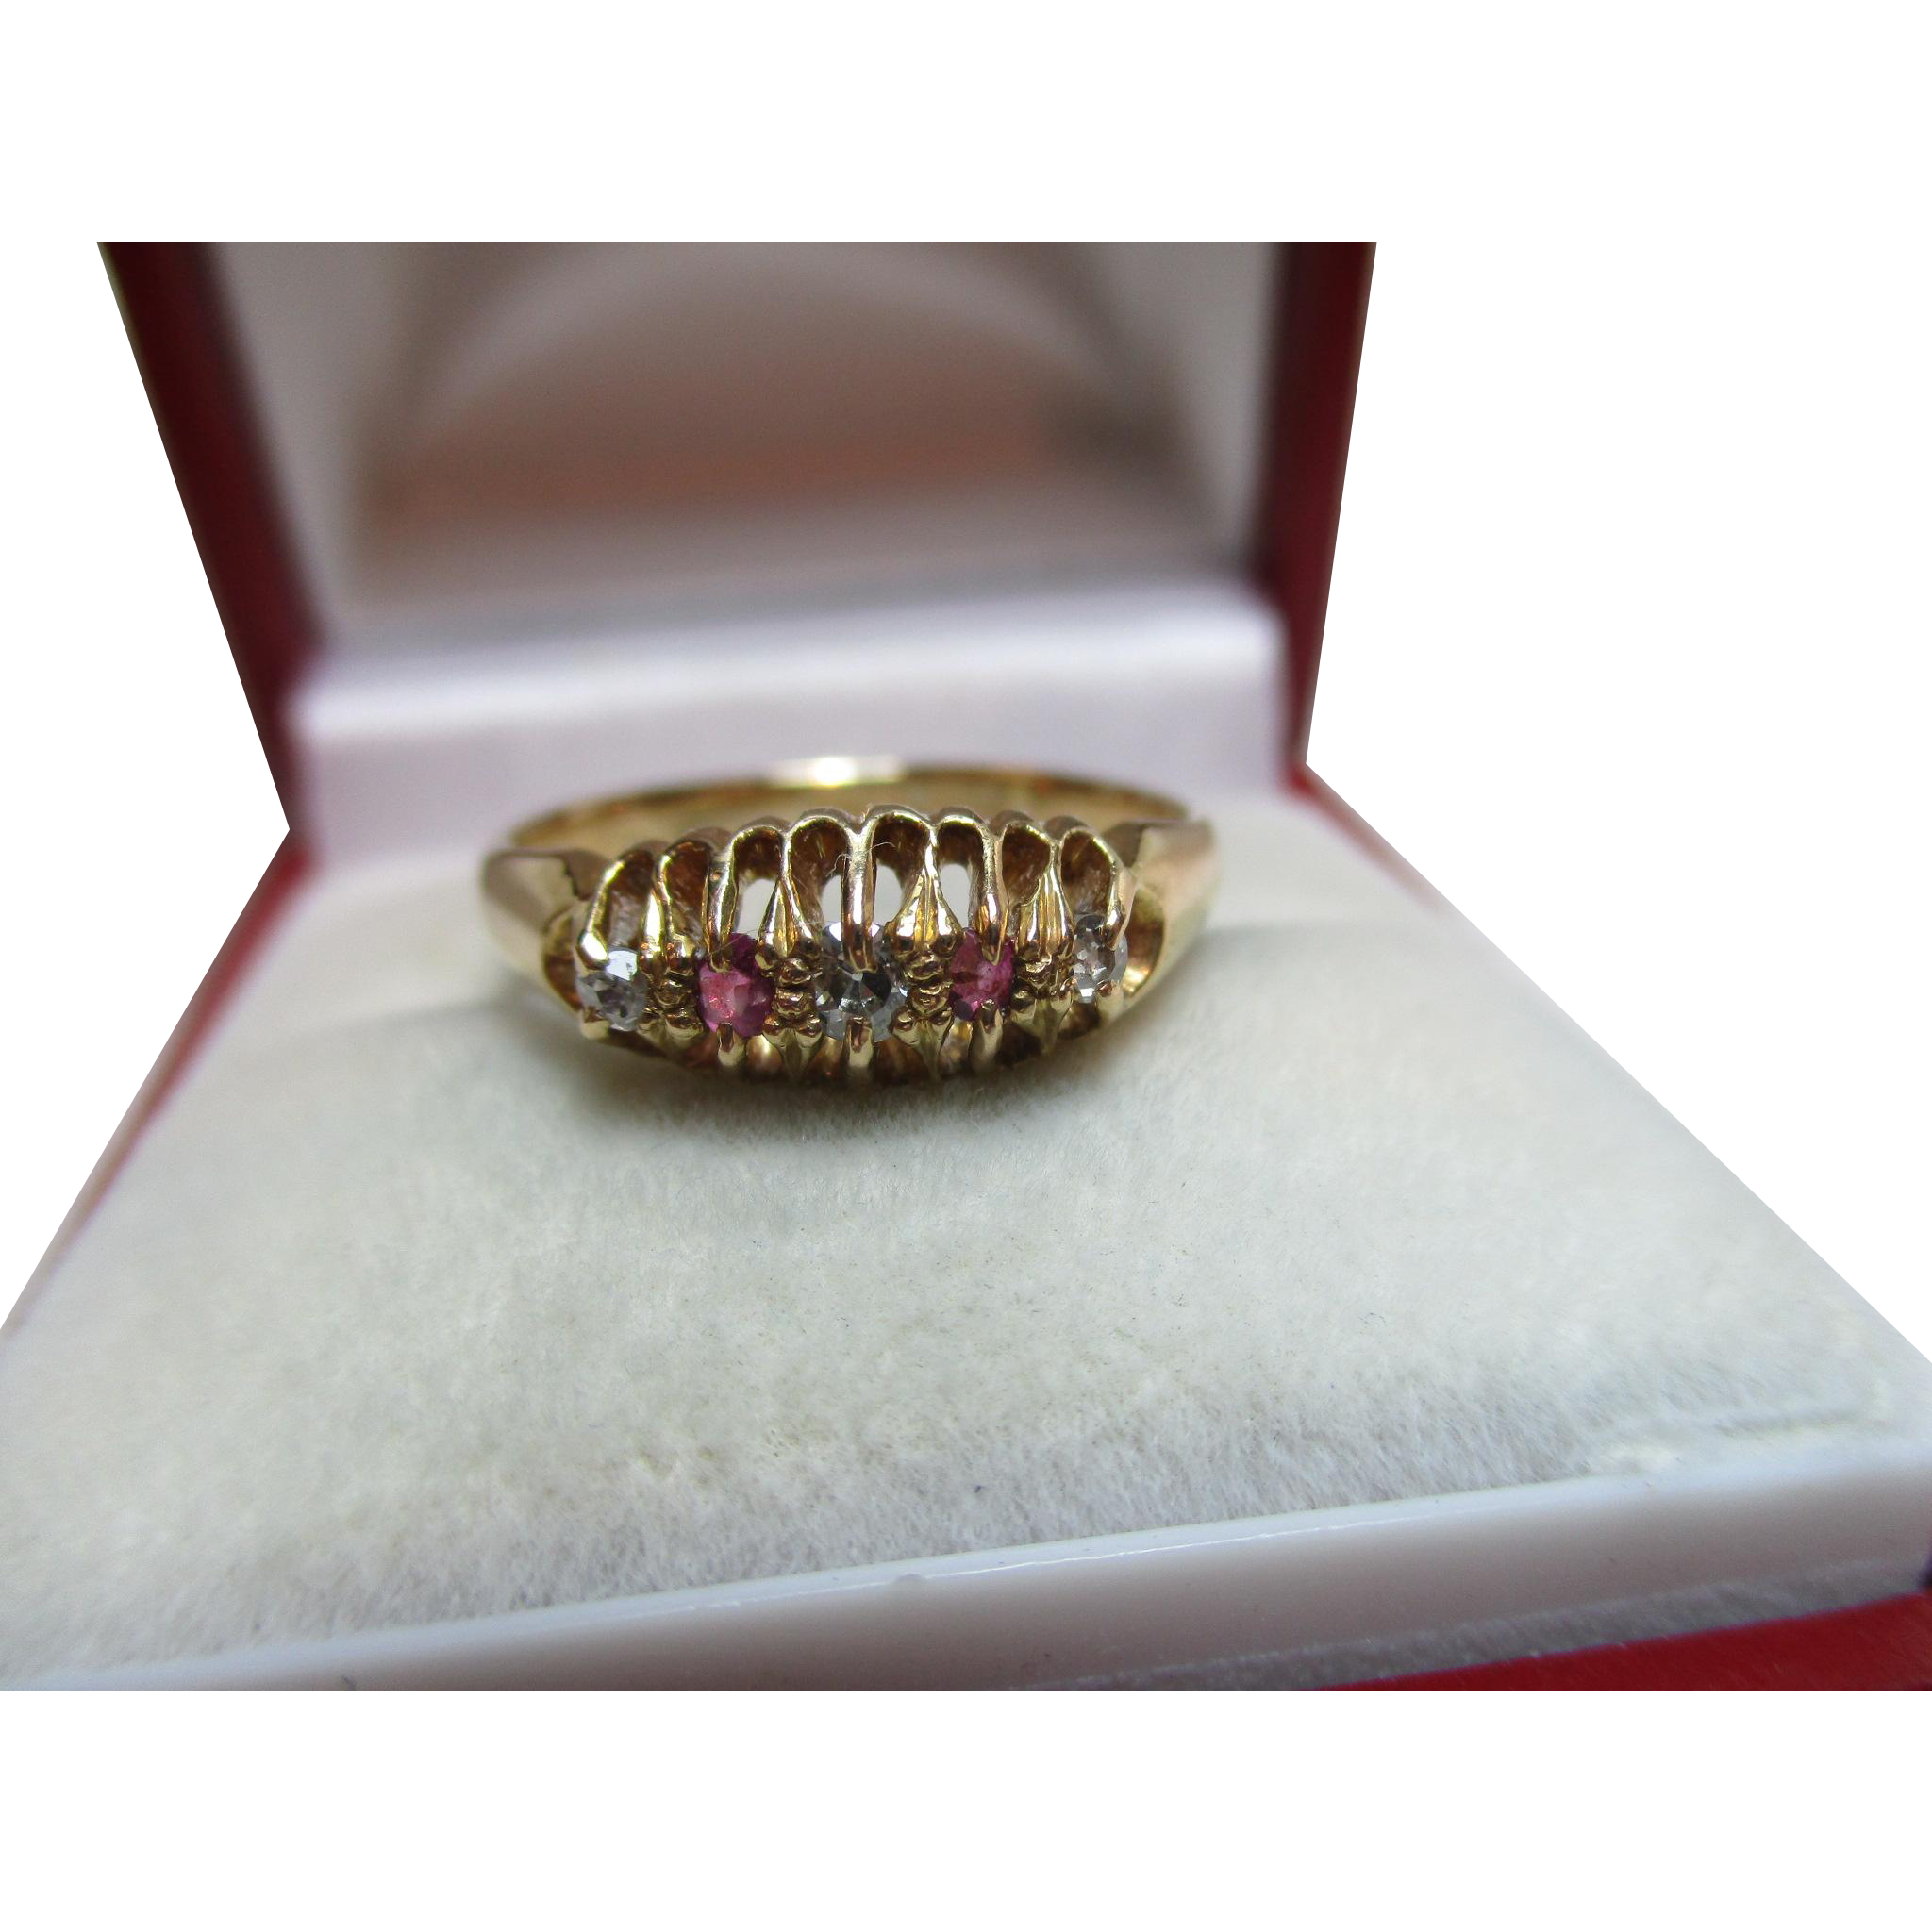 Decorative{Birmingham 1920} 18ct Solid Gold 5-Stone Diamond + Ruby Gemstone Ring